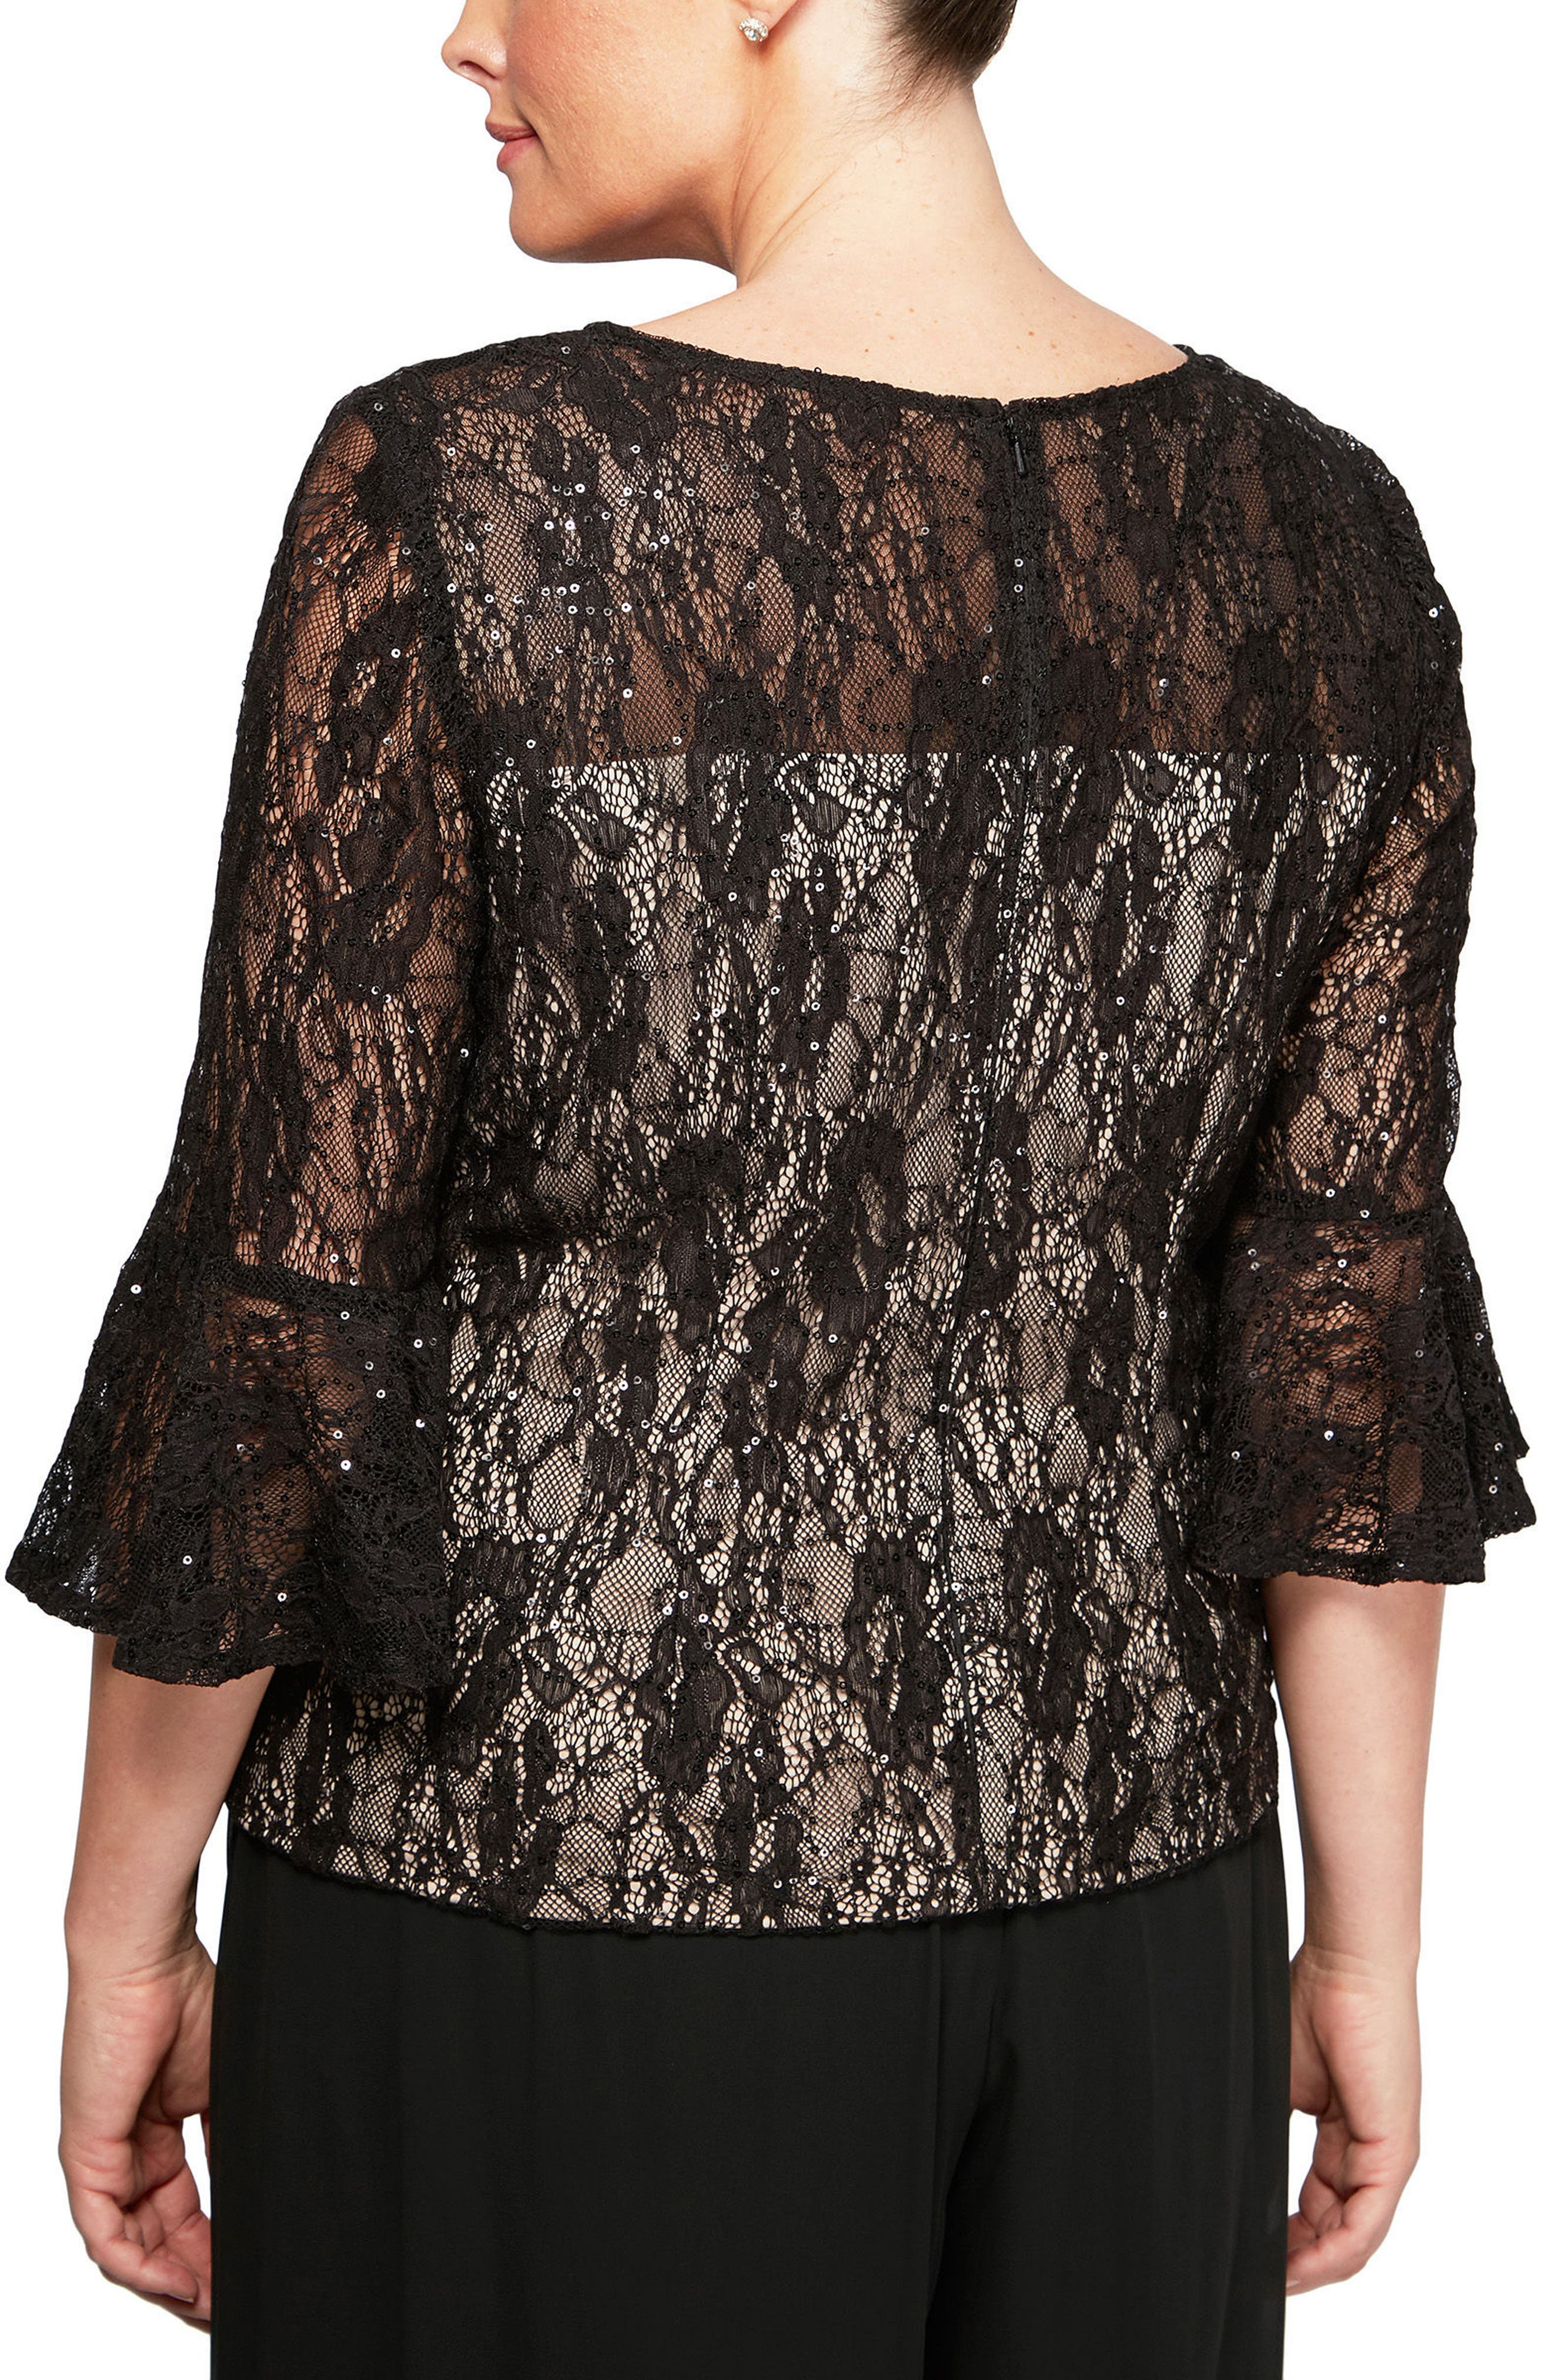 Bell Sleeve Sequin Lace Blouse,                             Alternate thumbnail 2, color,                             Black/ Nude